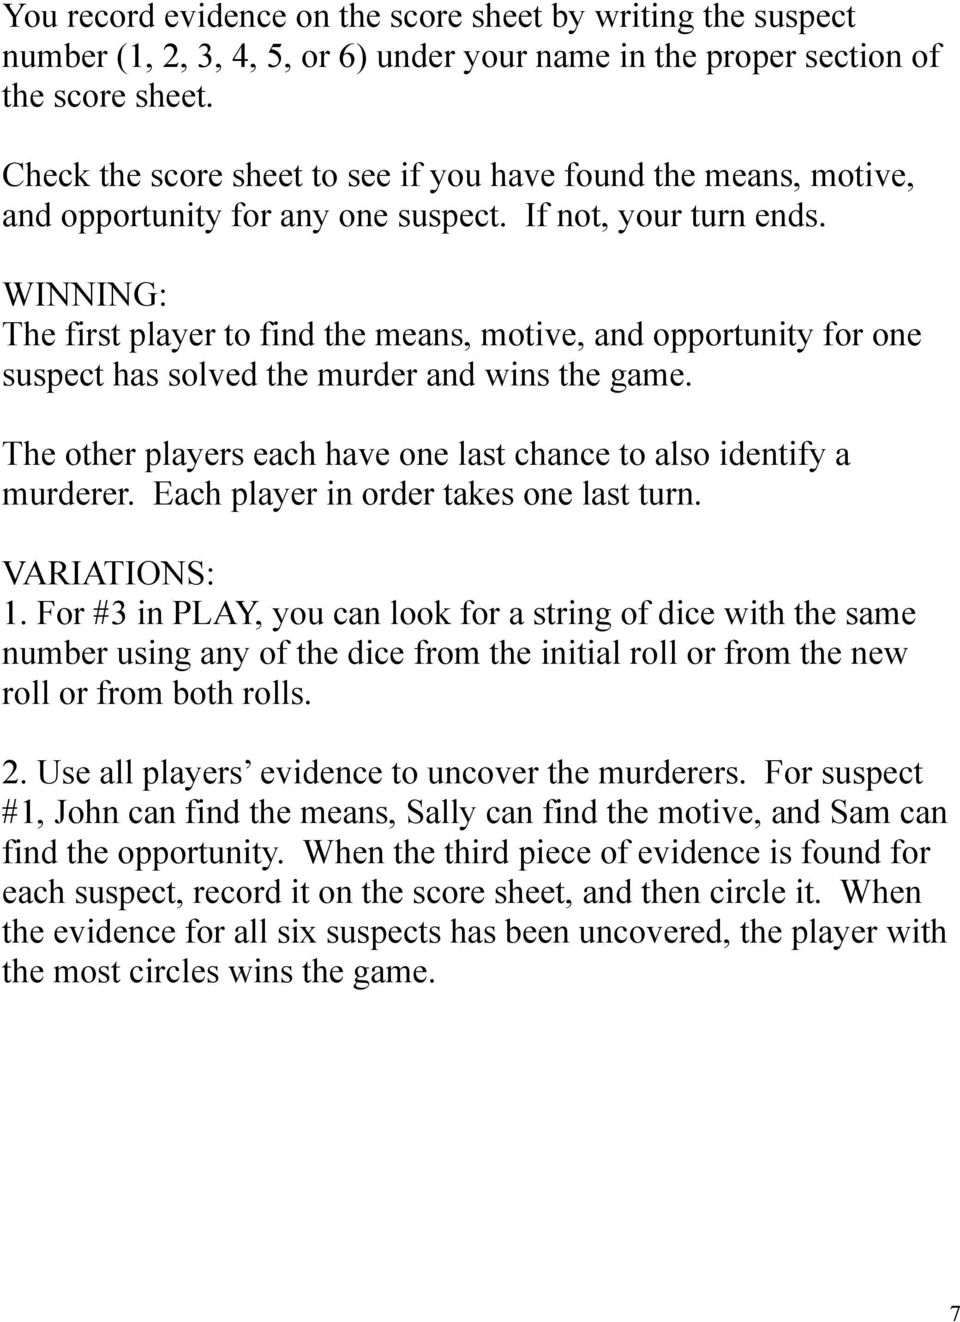 WINNING: The first player to find the means, motive, and opportunity for one suspect has solved the murder and wins the game. The other players each have one last chance to also identify a murderer.